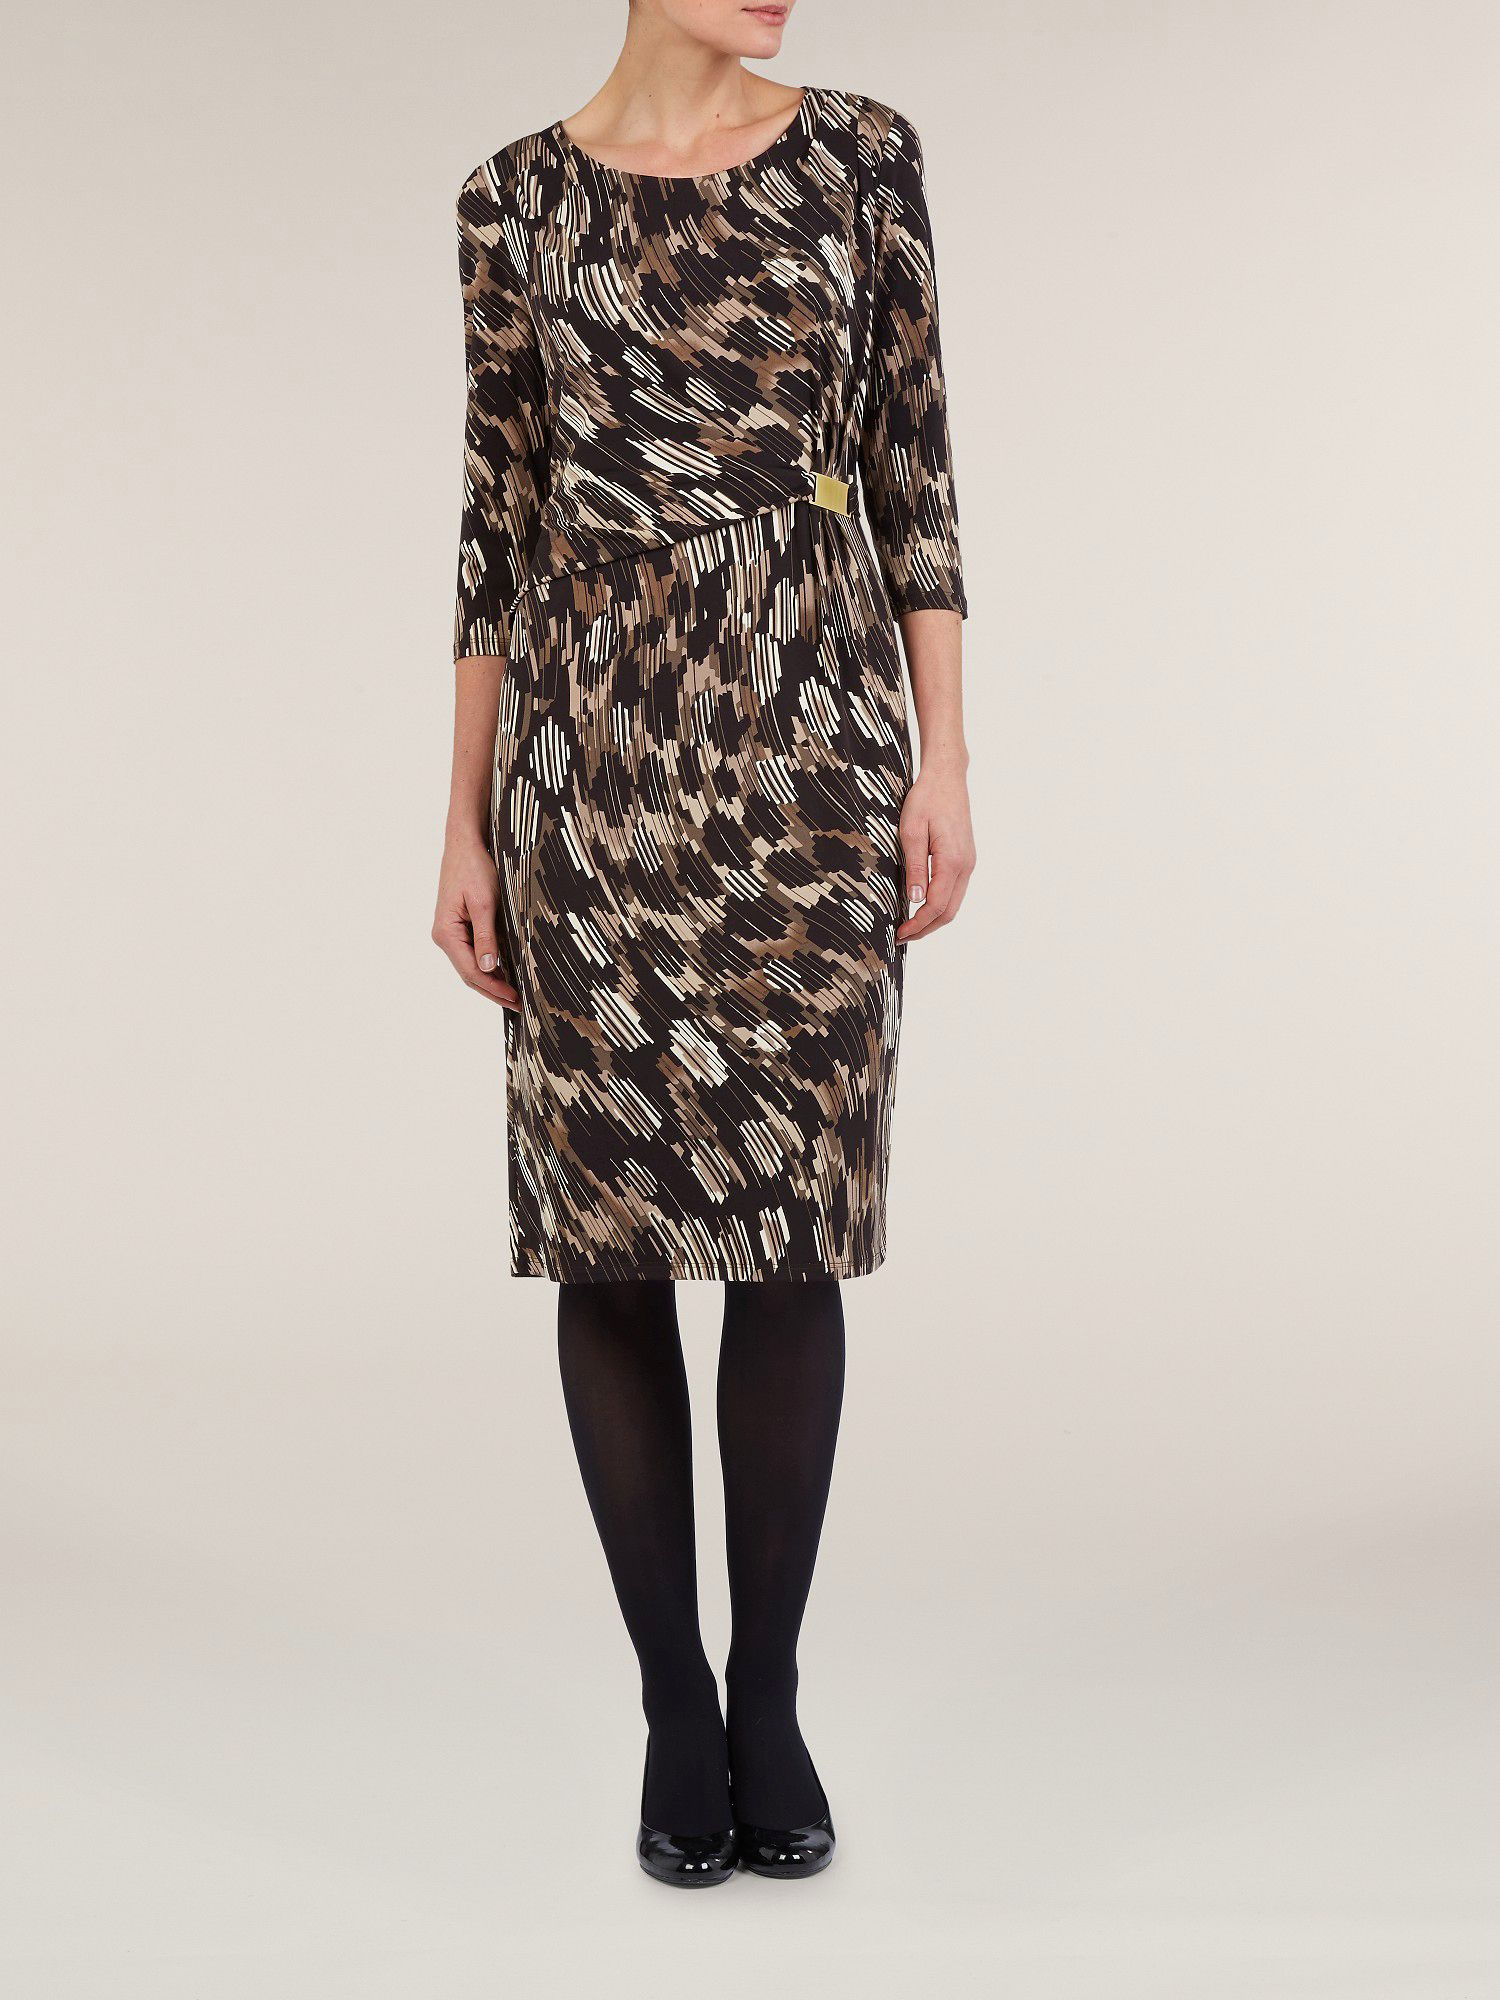 Black geometric print jersey dress